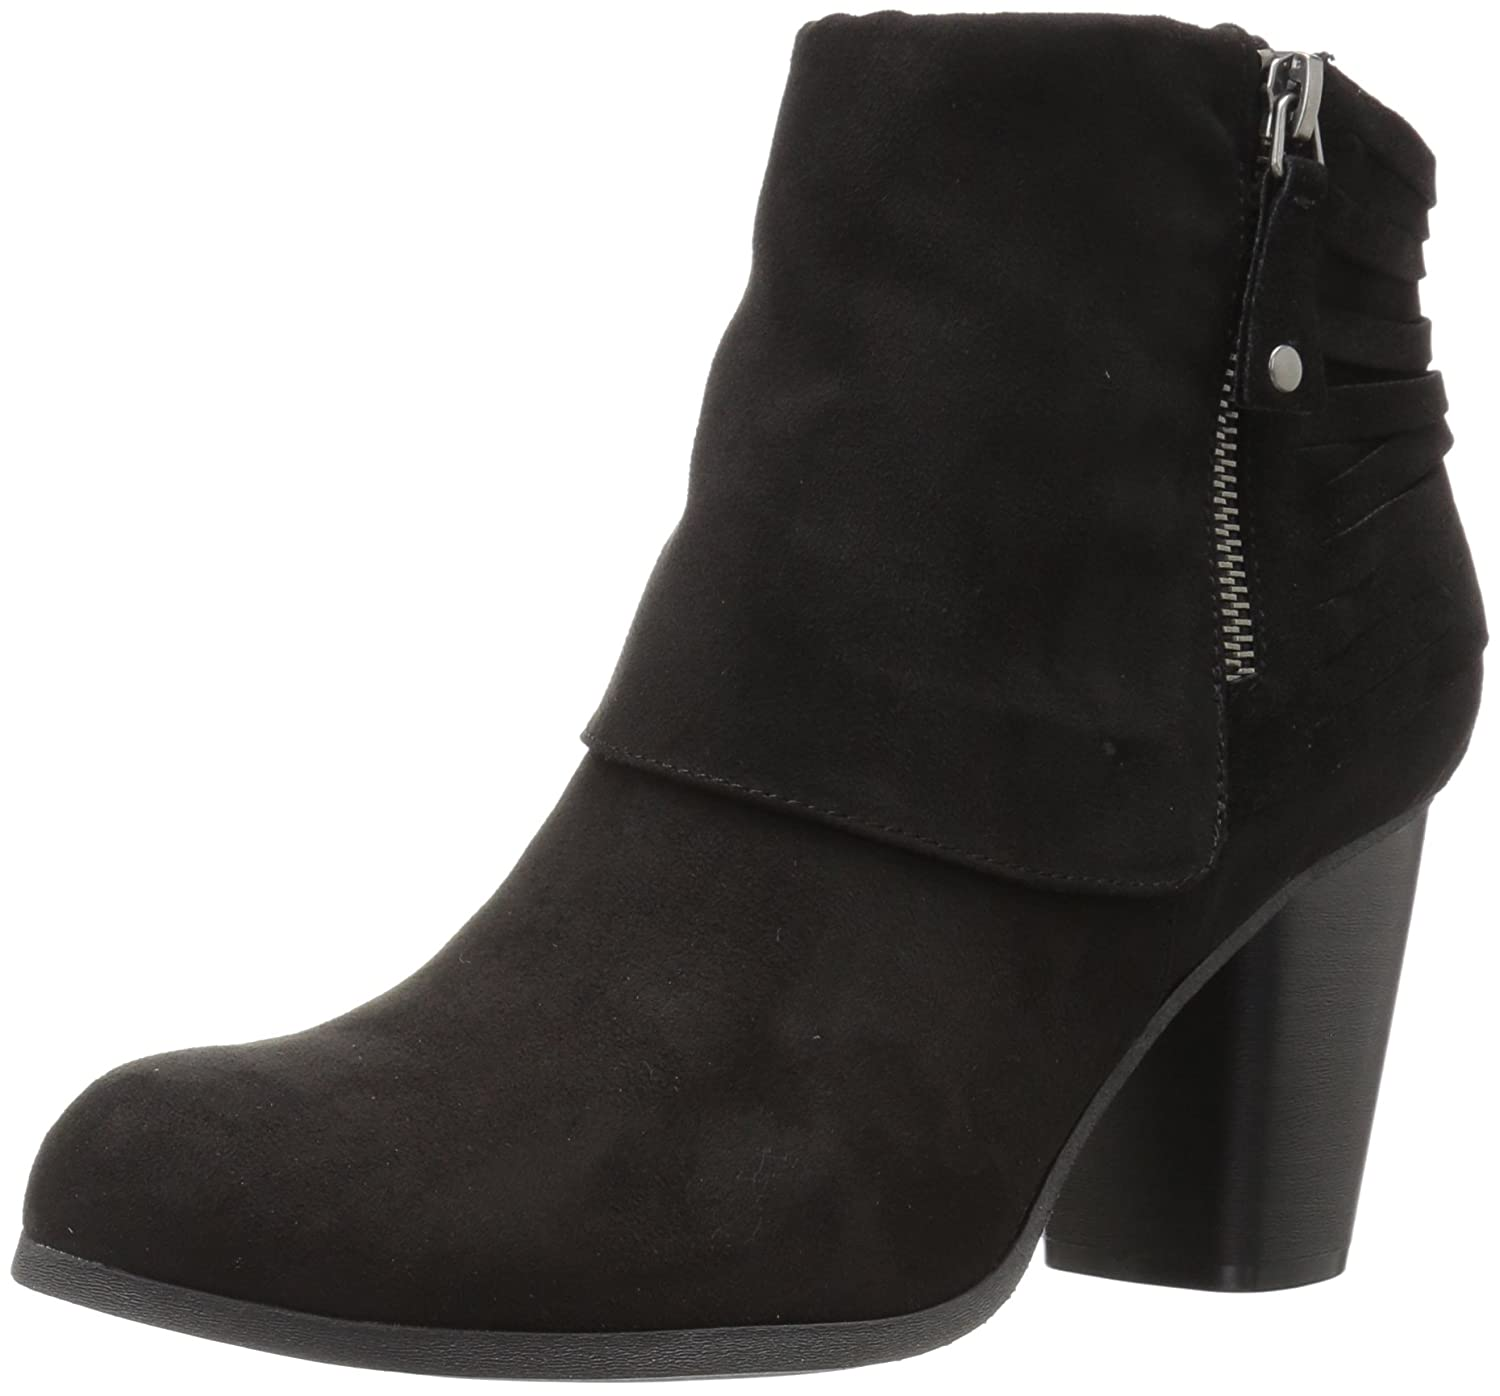 Madden Girl Women's Destory Ankle Bootie B06XJFF9N3 6 M US|Black Fabric